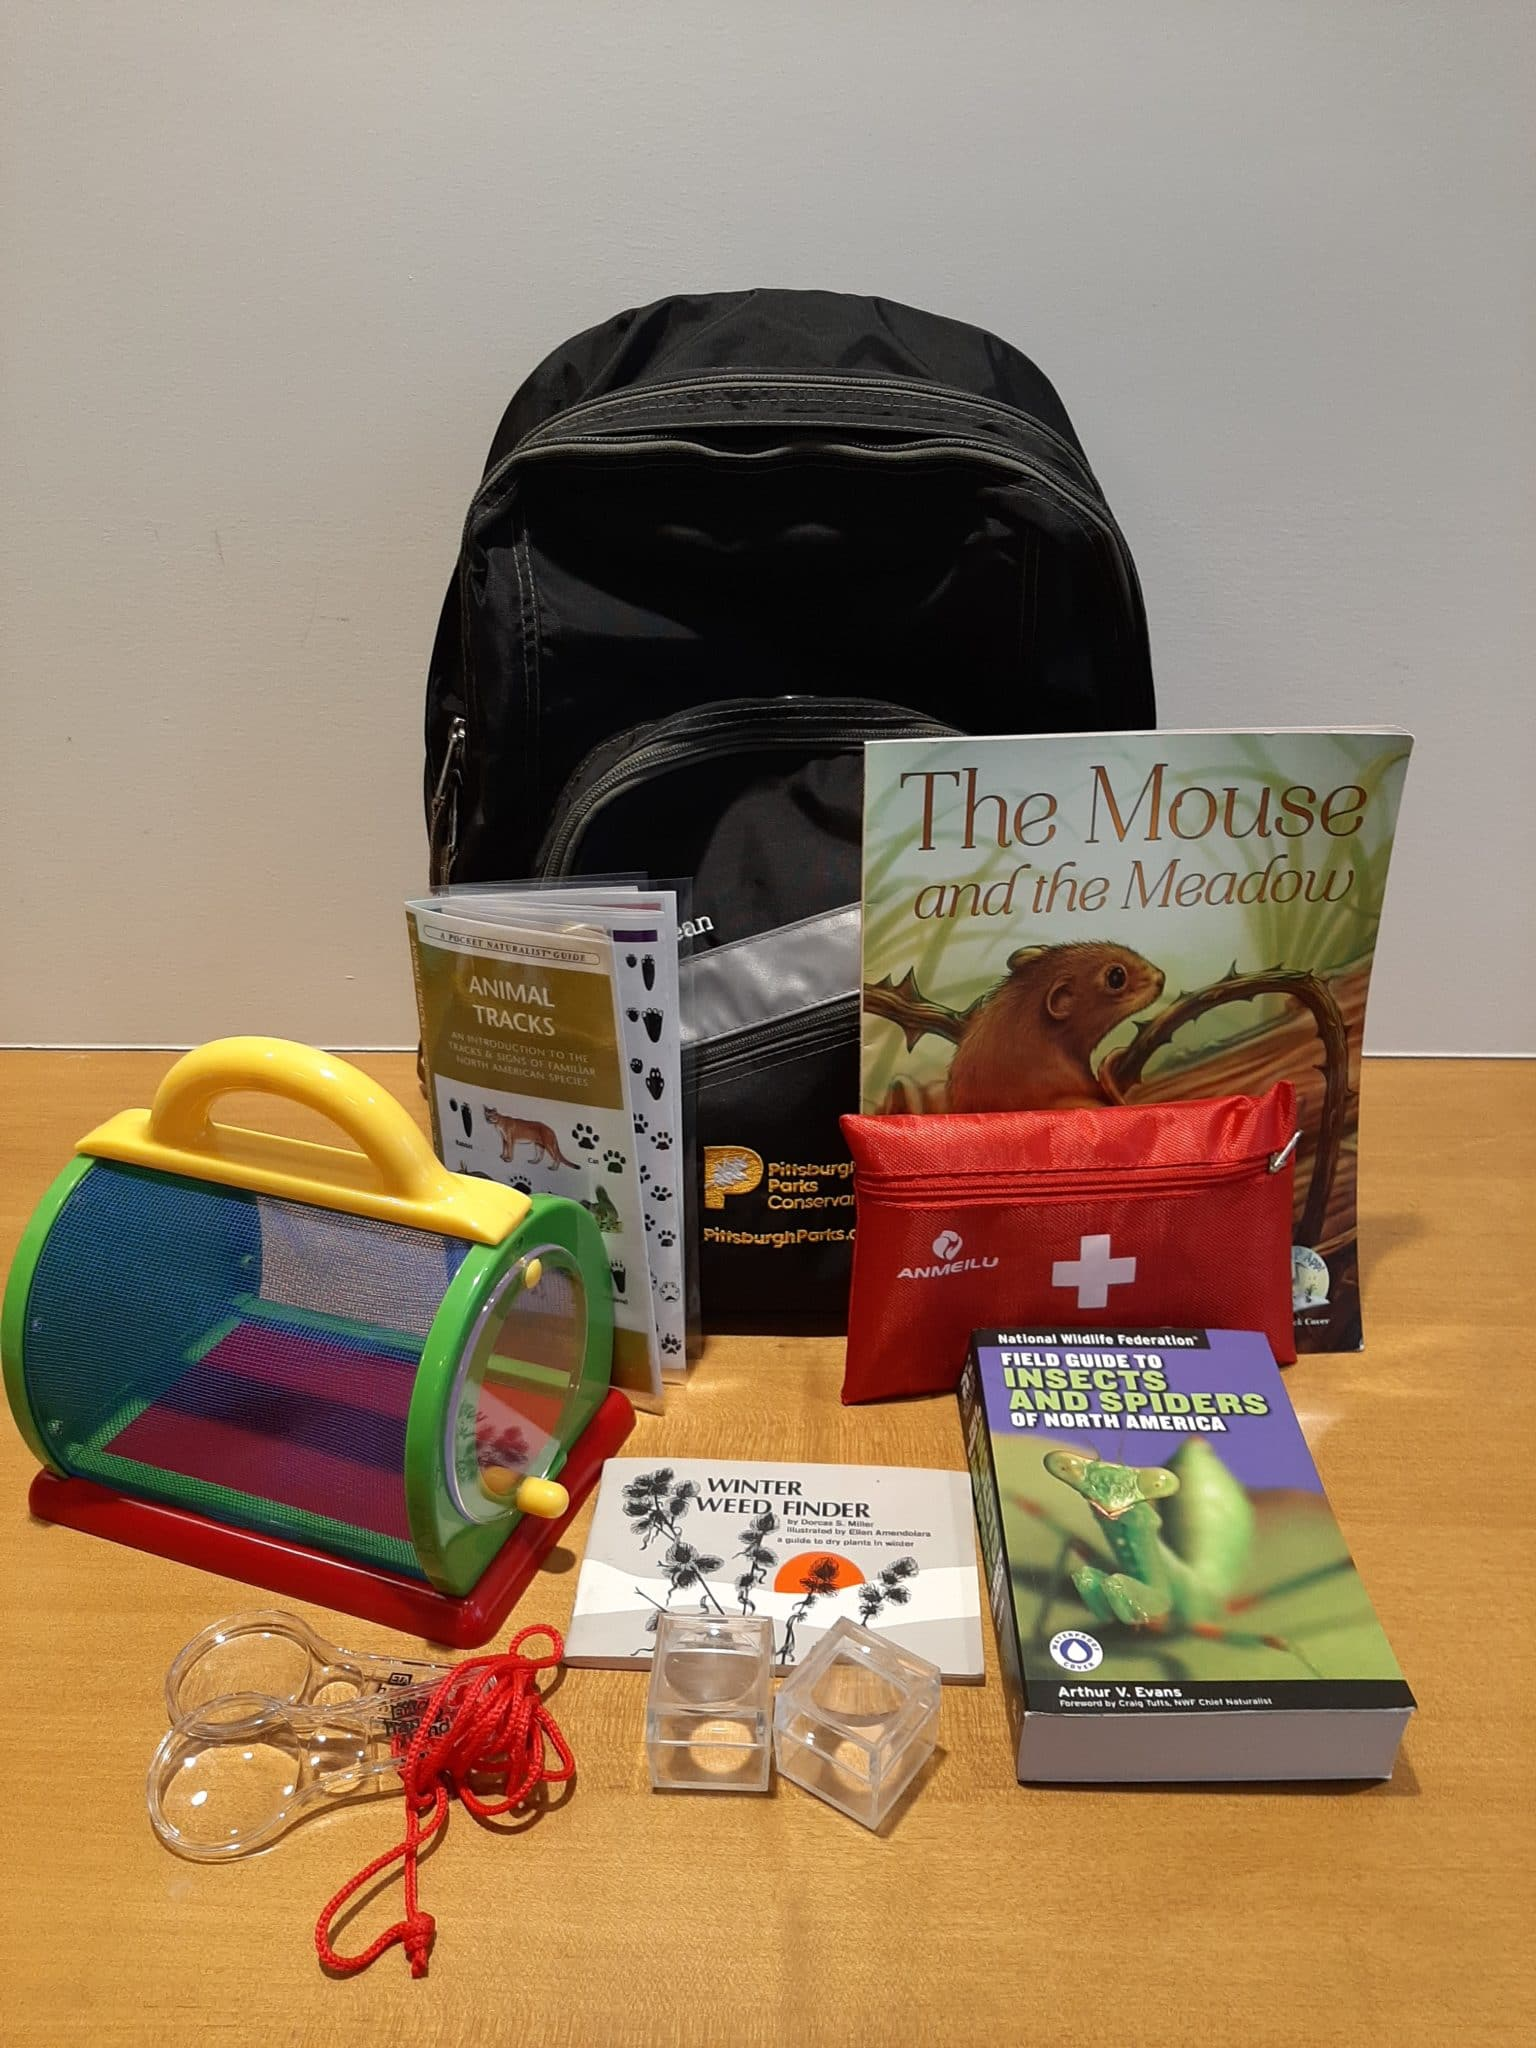 Backpack with tools and nature guides